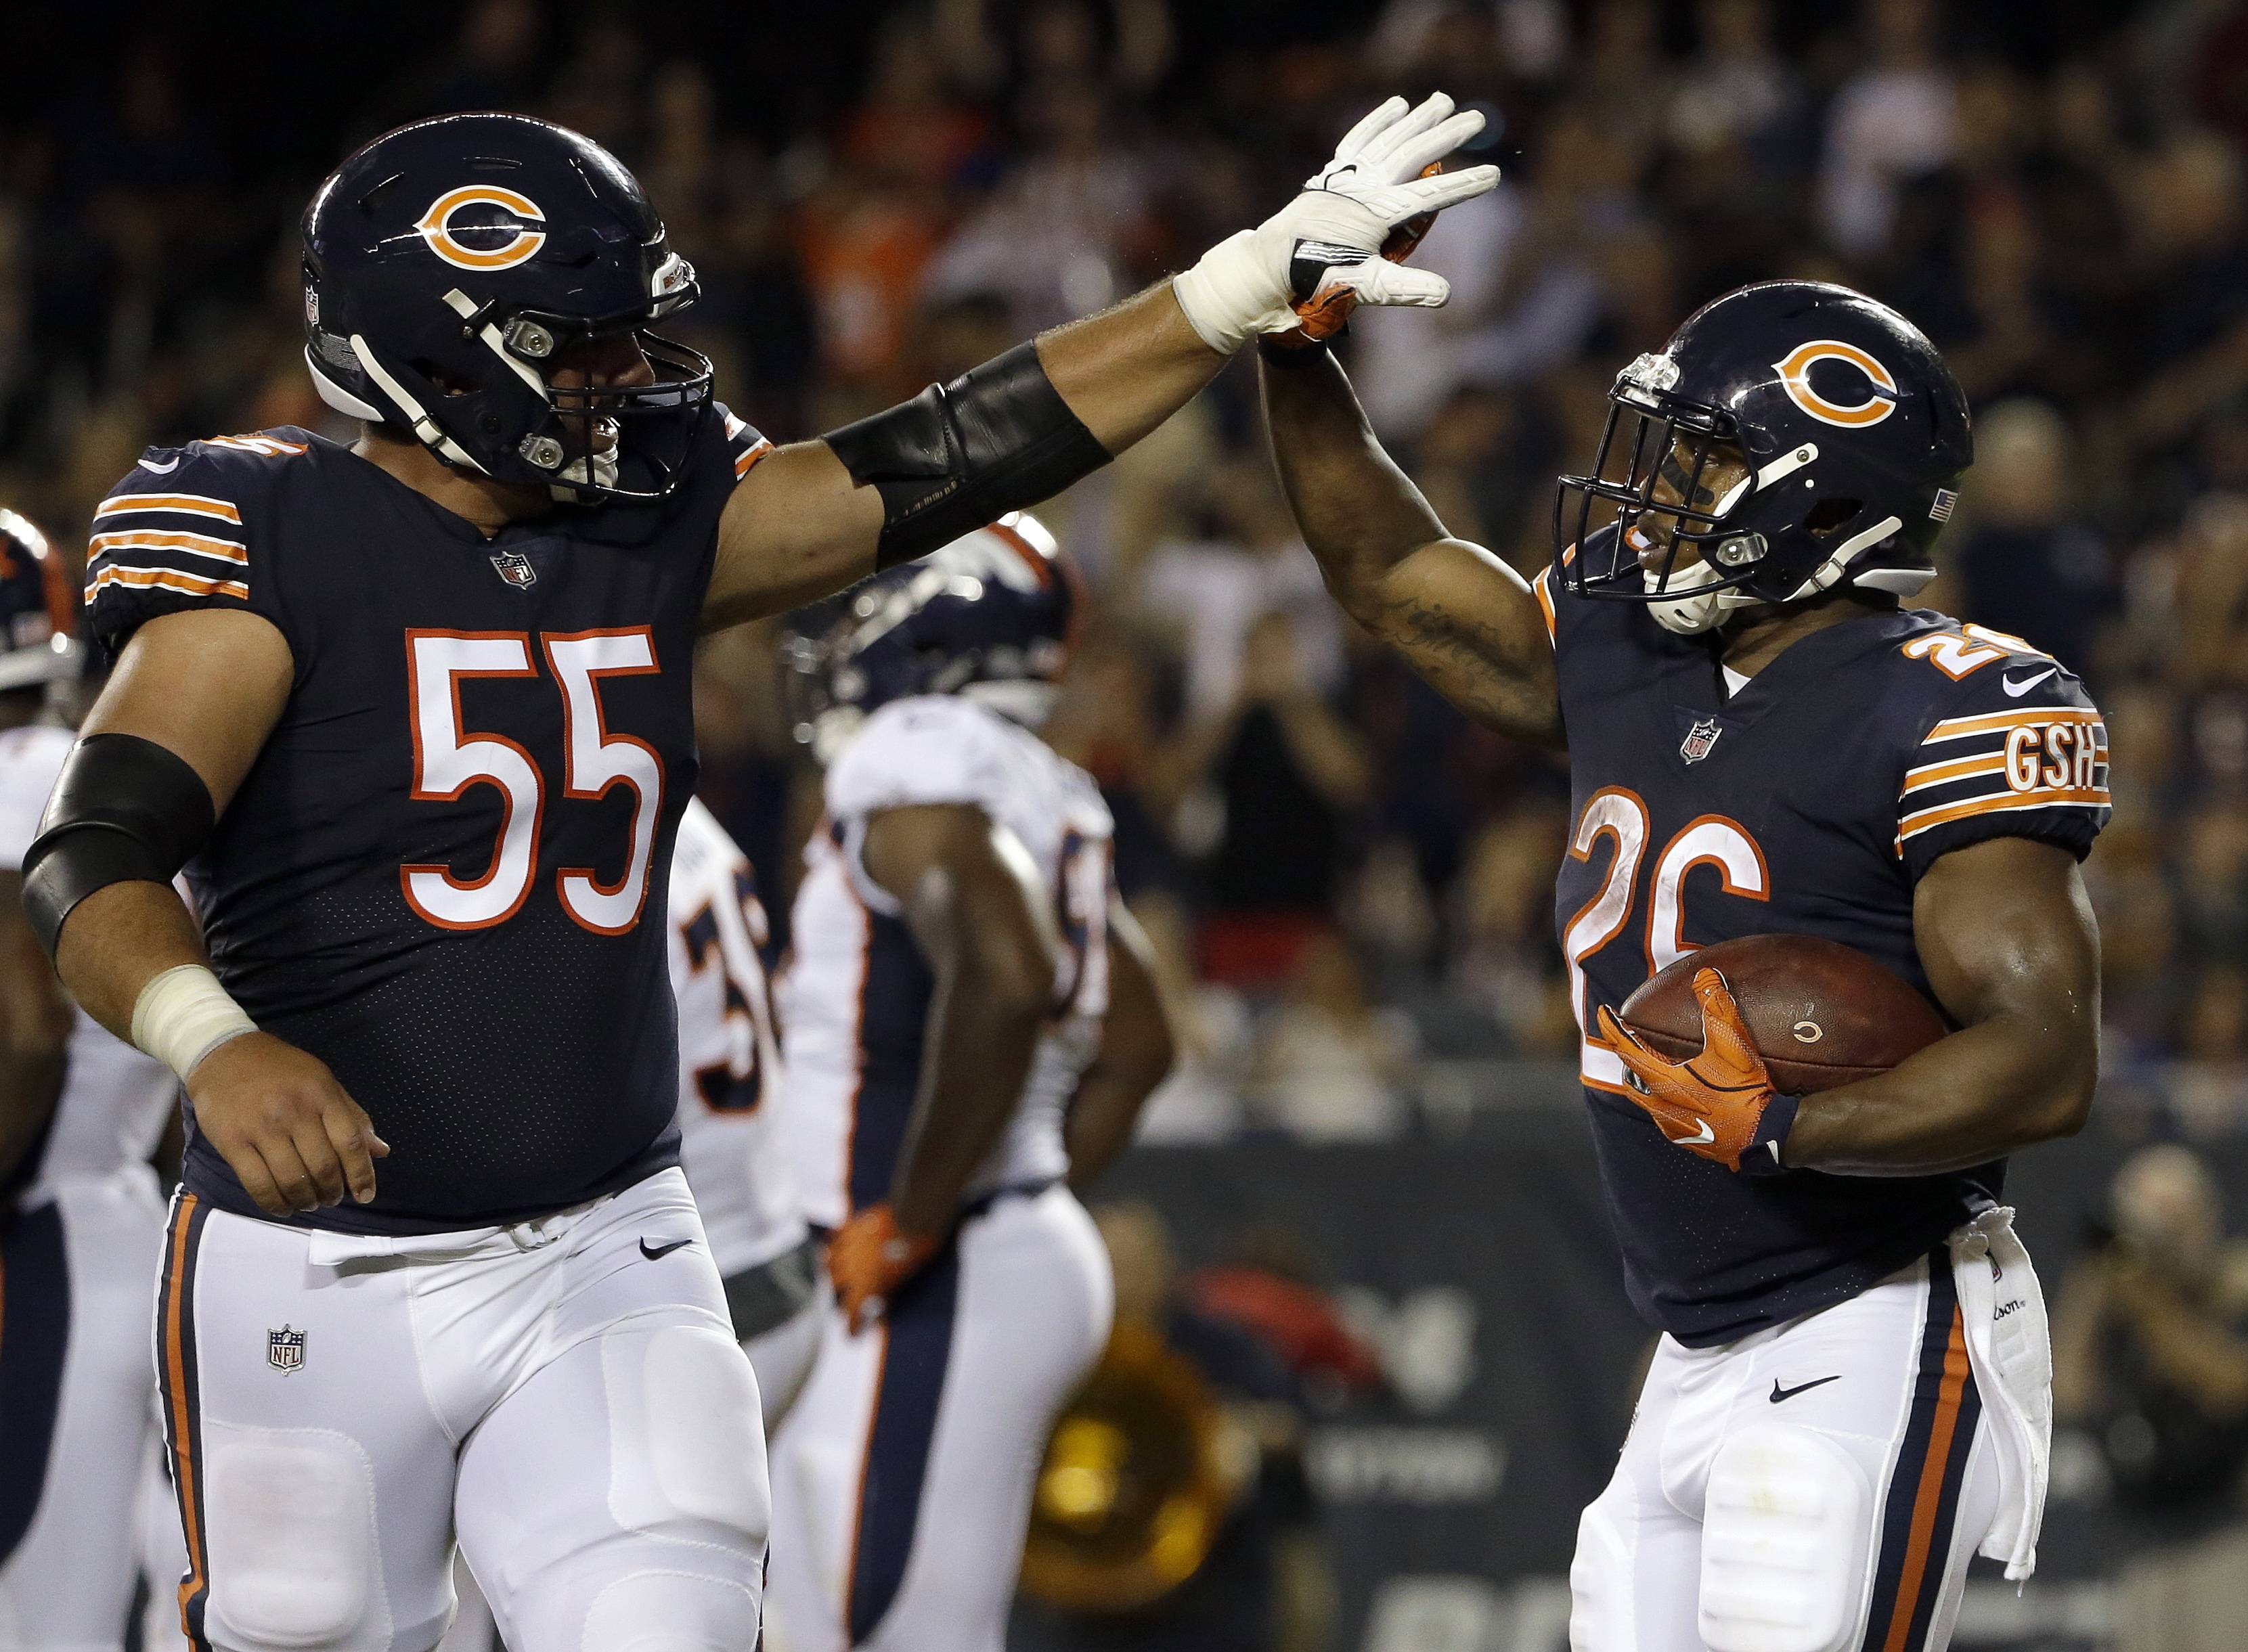 Chicago Bears running back Benny Cunningham (26) celebrates a touchdown with center Hroniss Grasu (55) during the second half of an NFL preseason football game against the Denver Broncos, Thursday, Aug. 10, 2017, in Chicago.